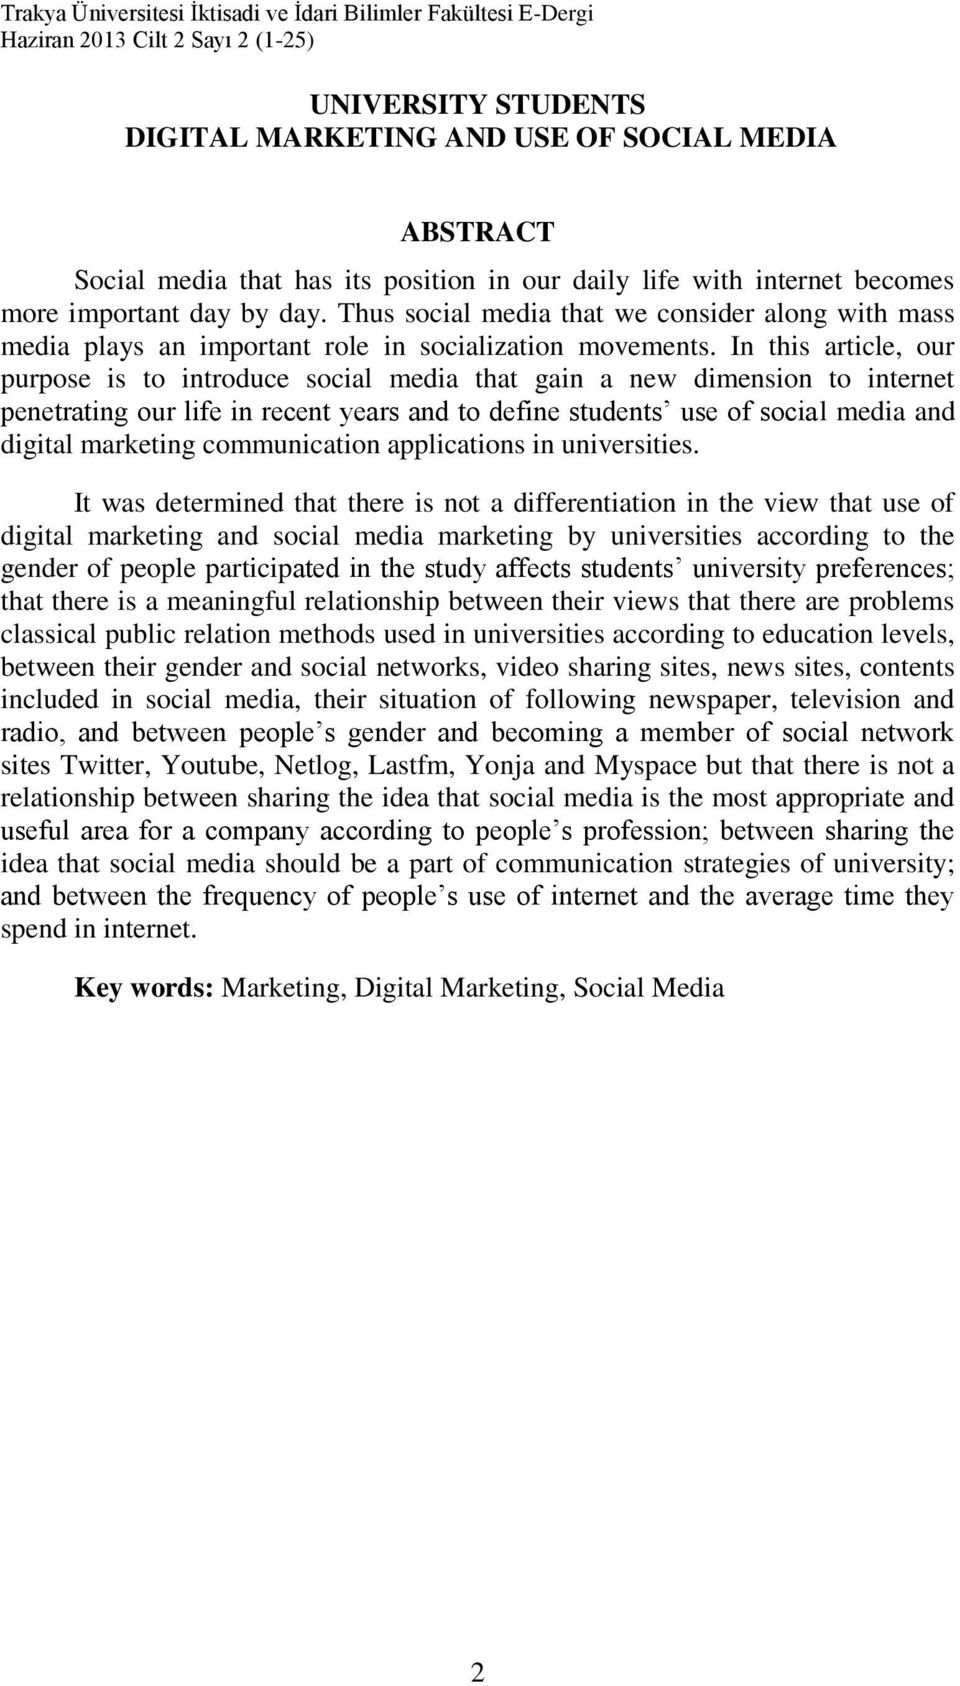 In this article, our purpose is to introduce social media that gain a new dimension to internet penetrating our life in recent years and to define students use of social media and digital marketing